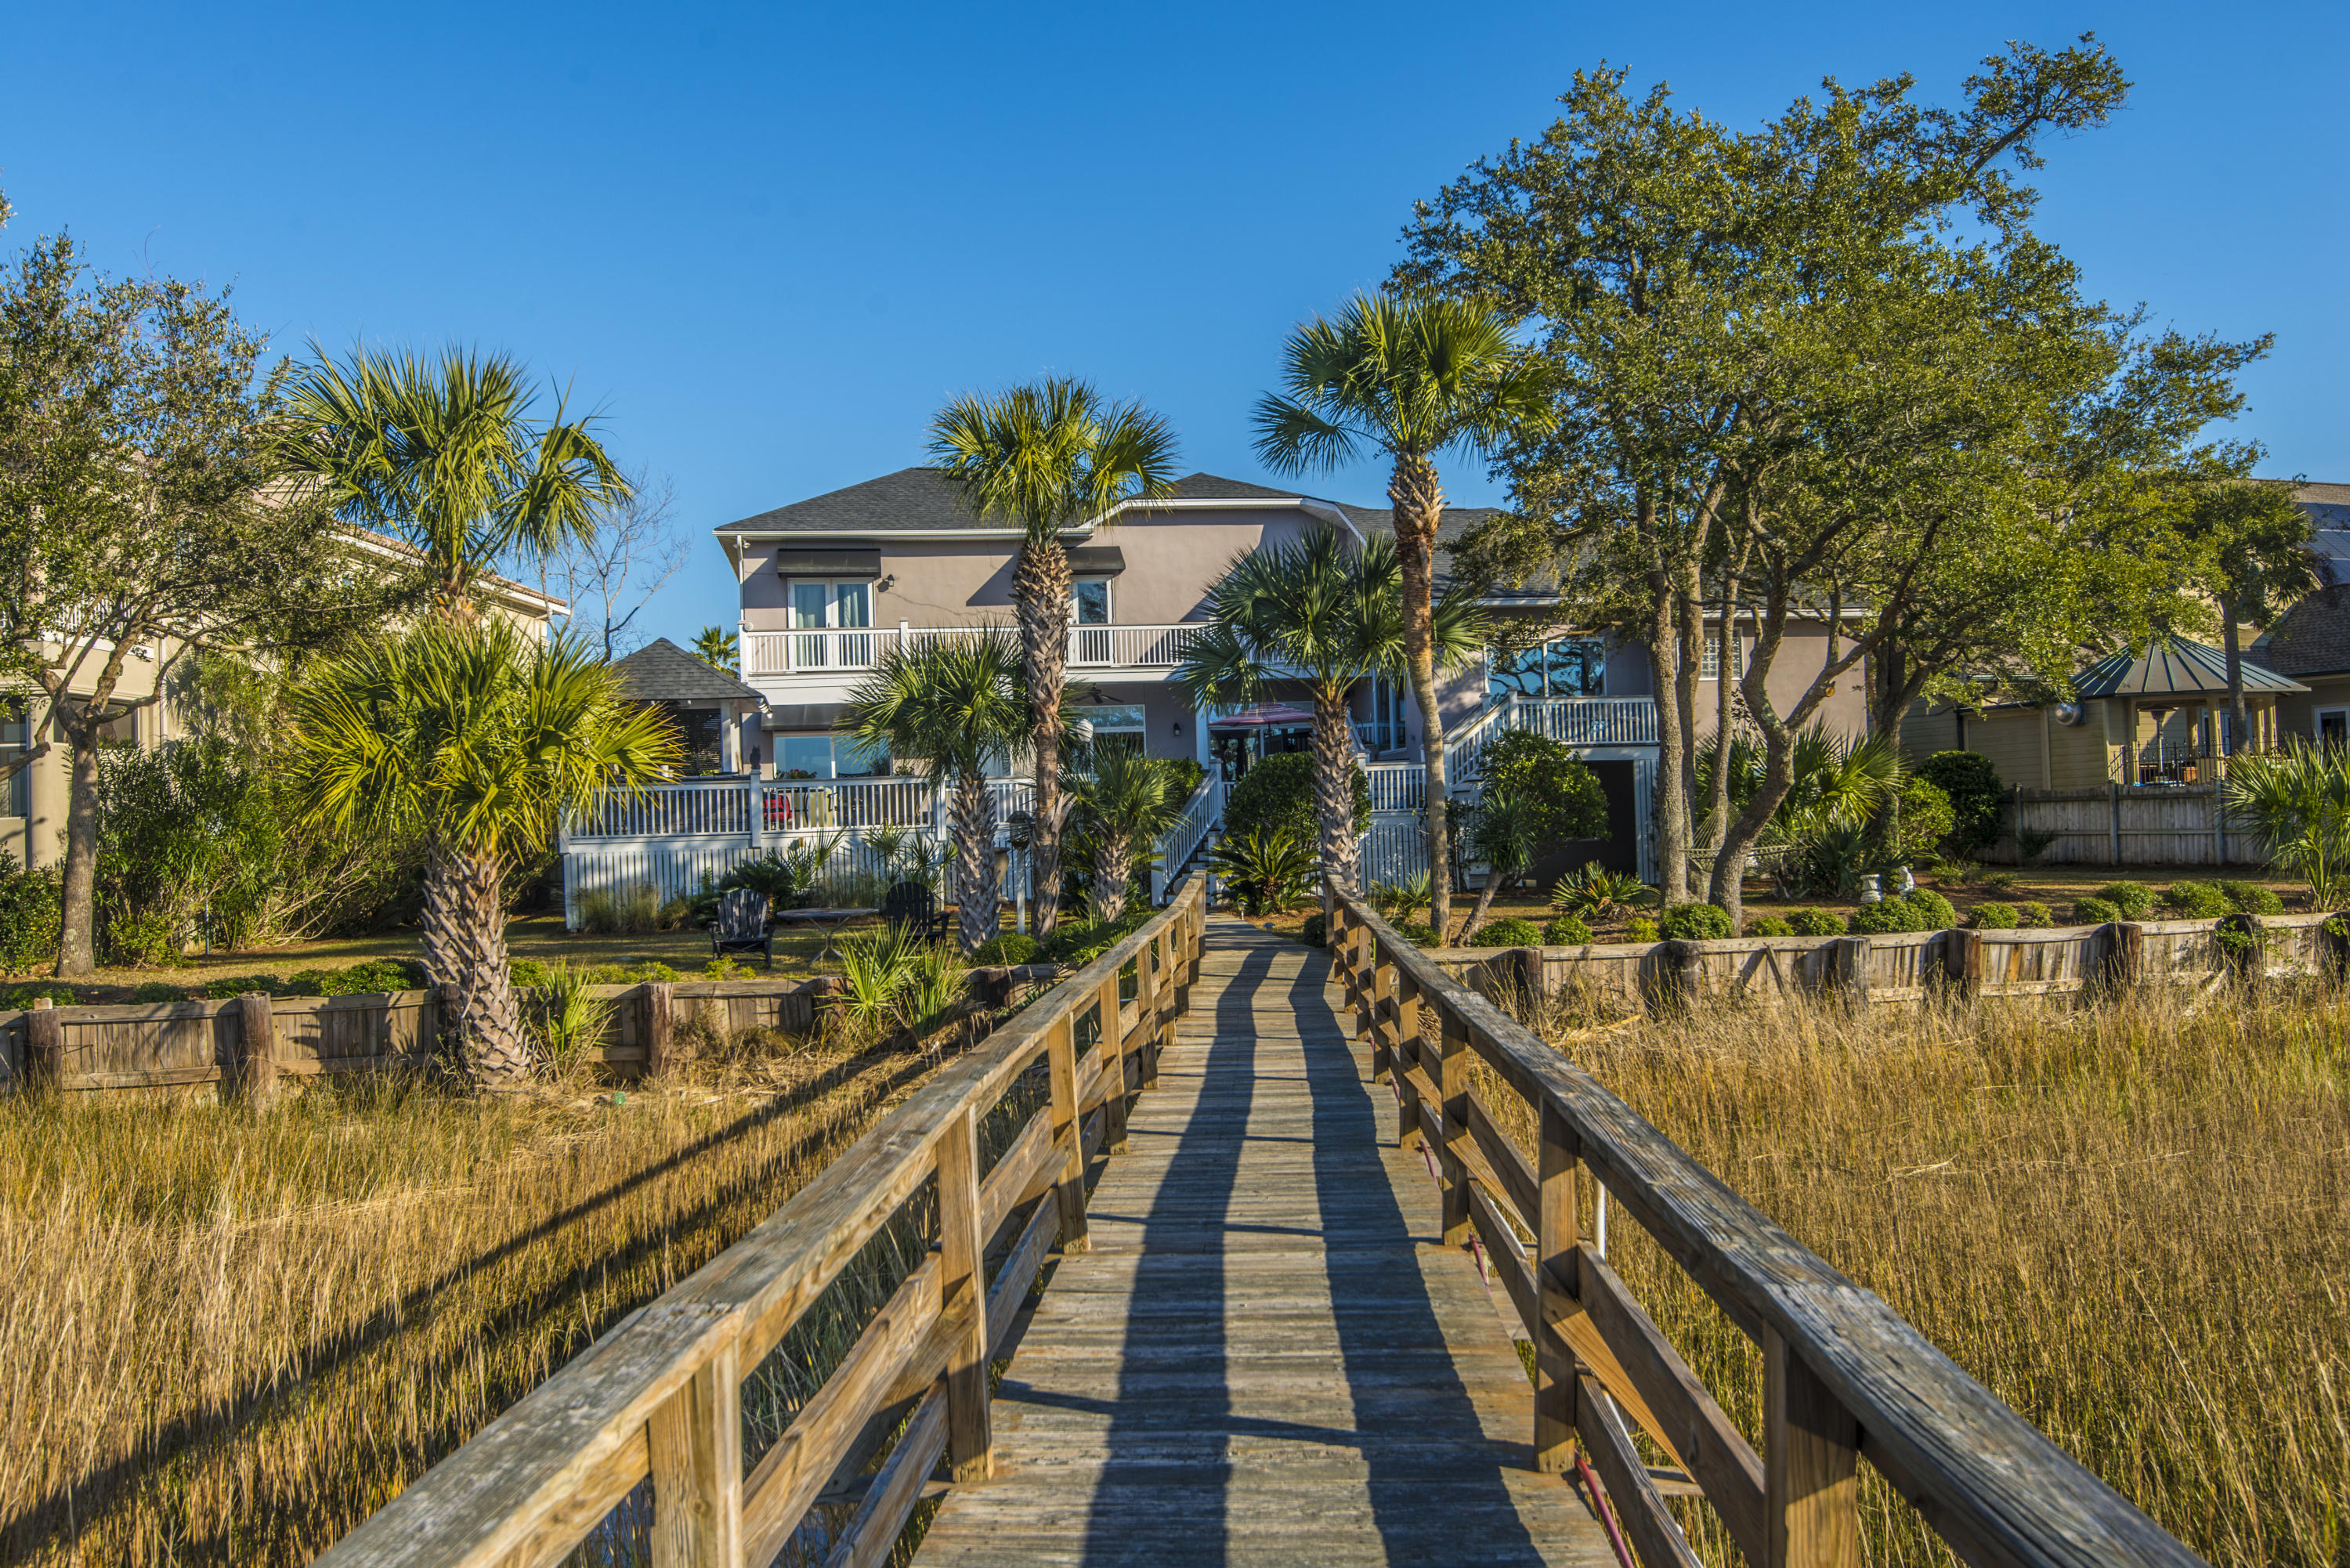 Rivertowne On The Wando Homes For Sale - 1958 Sandy Point, Mount Pleasant, SC - 11